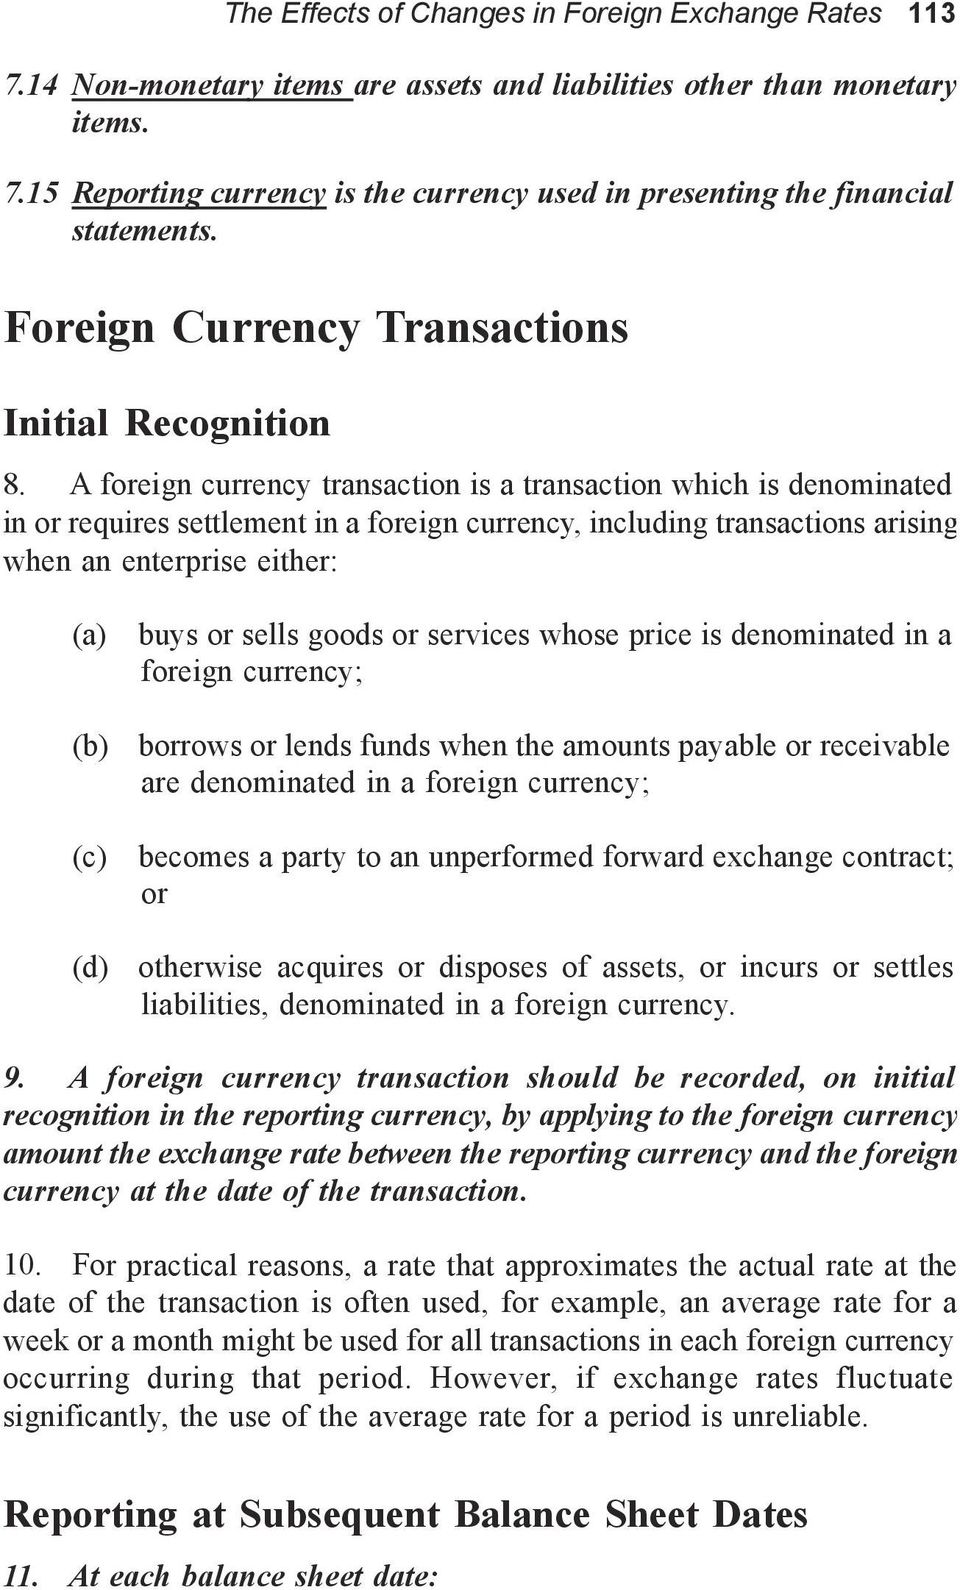 A foreign currency transaction is a transaction which is denominated in or requires settlement in a foreign currency, including transactions arising when an enterprise either: (a) buys or sells goods